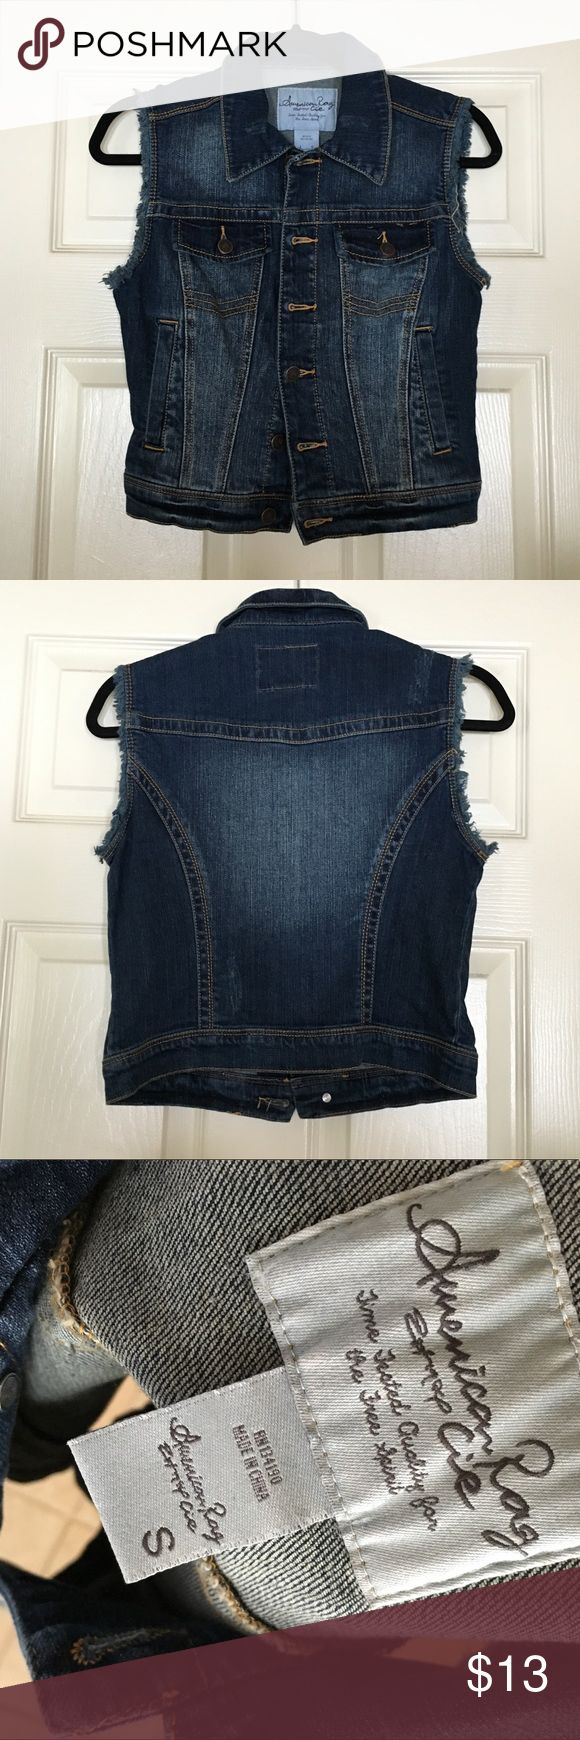 American Rag Jean Vest Only Worn Once! This cute vest would accessorize any outfit! It's perfect wash complements all colors and can be worn with any pant! Says sml but can fit xs and some med Let me know if you have any questions or offers:) American Rag Jackets & Coats Jean Jackets